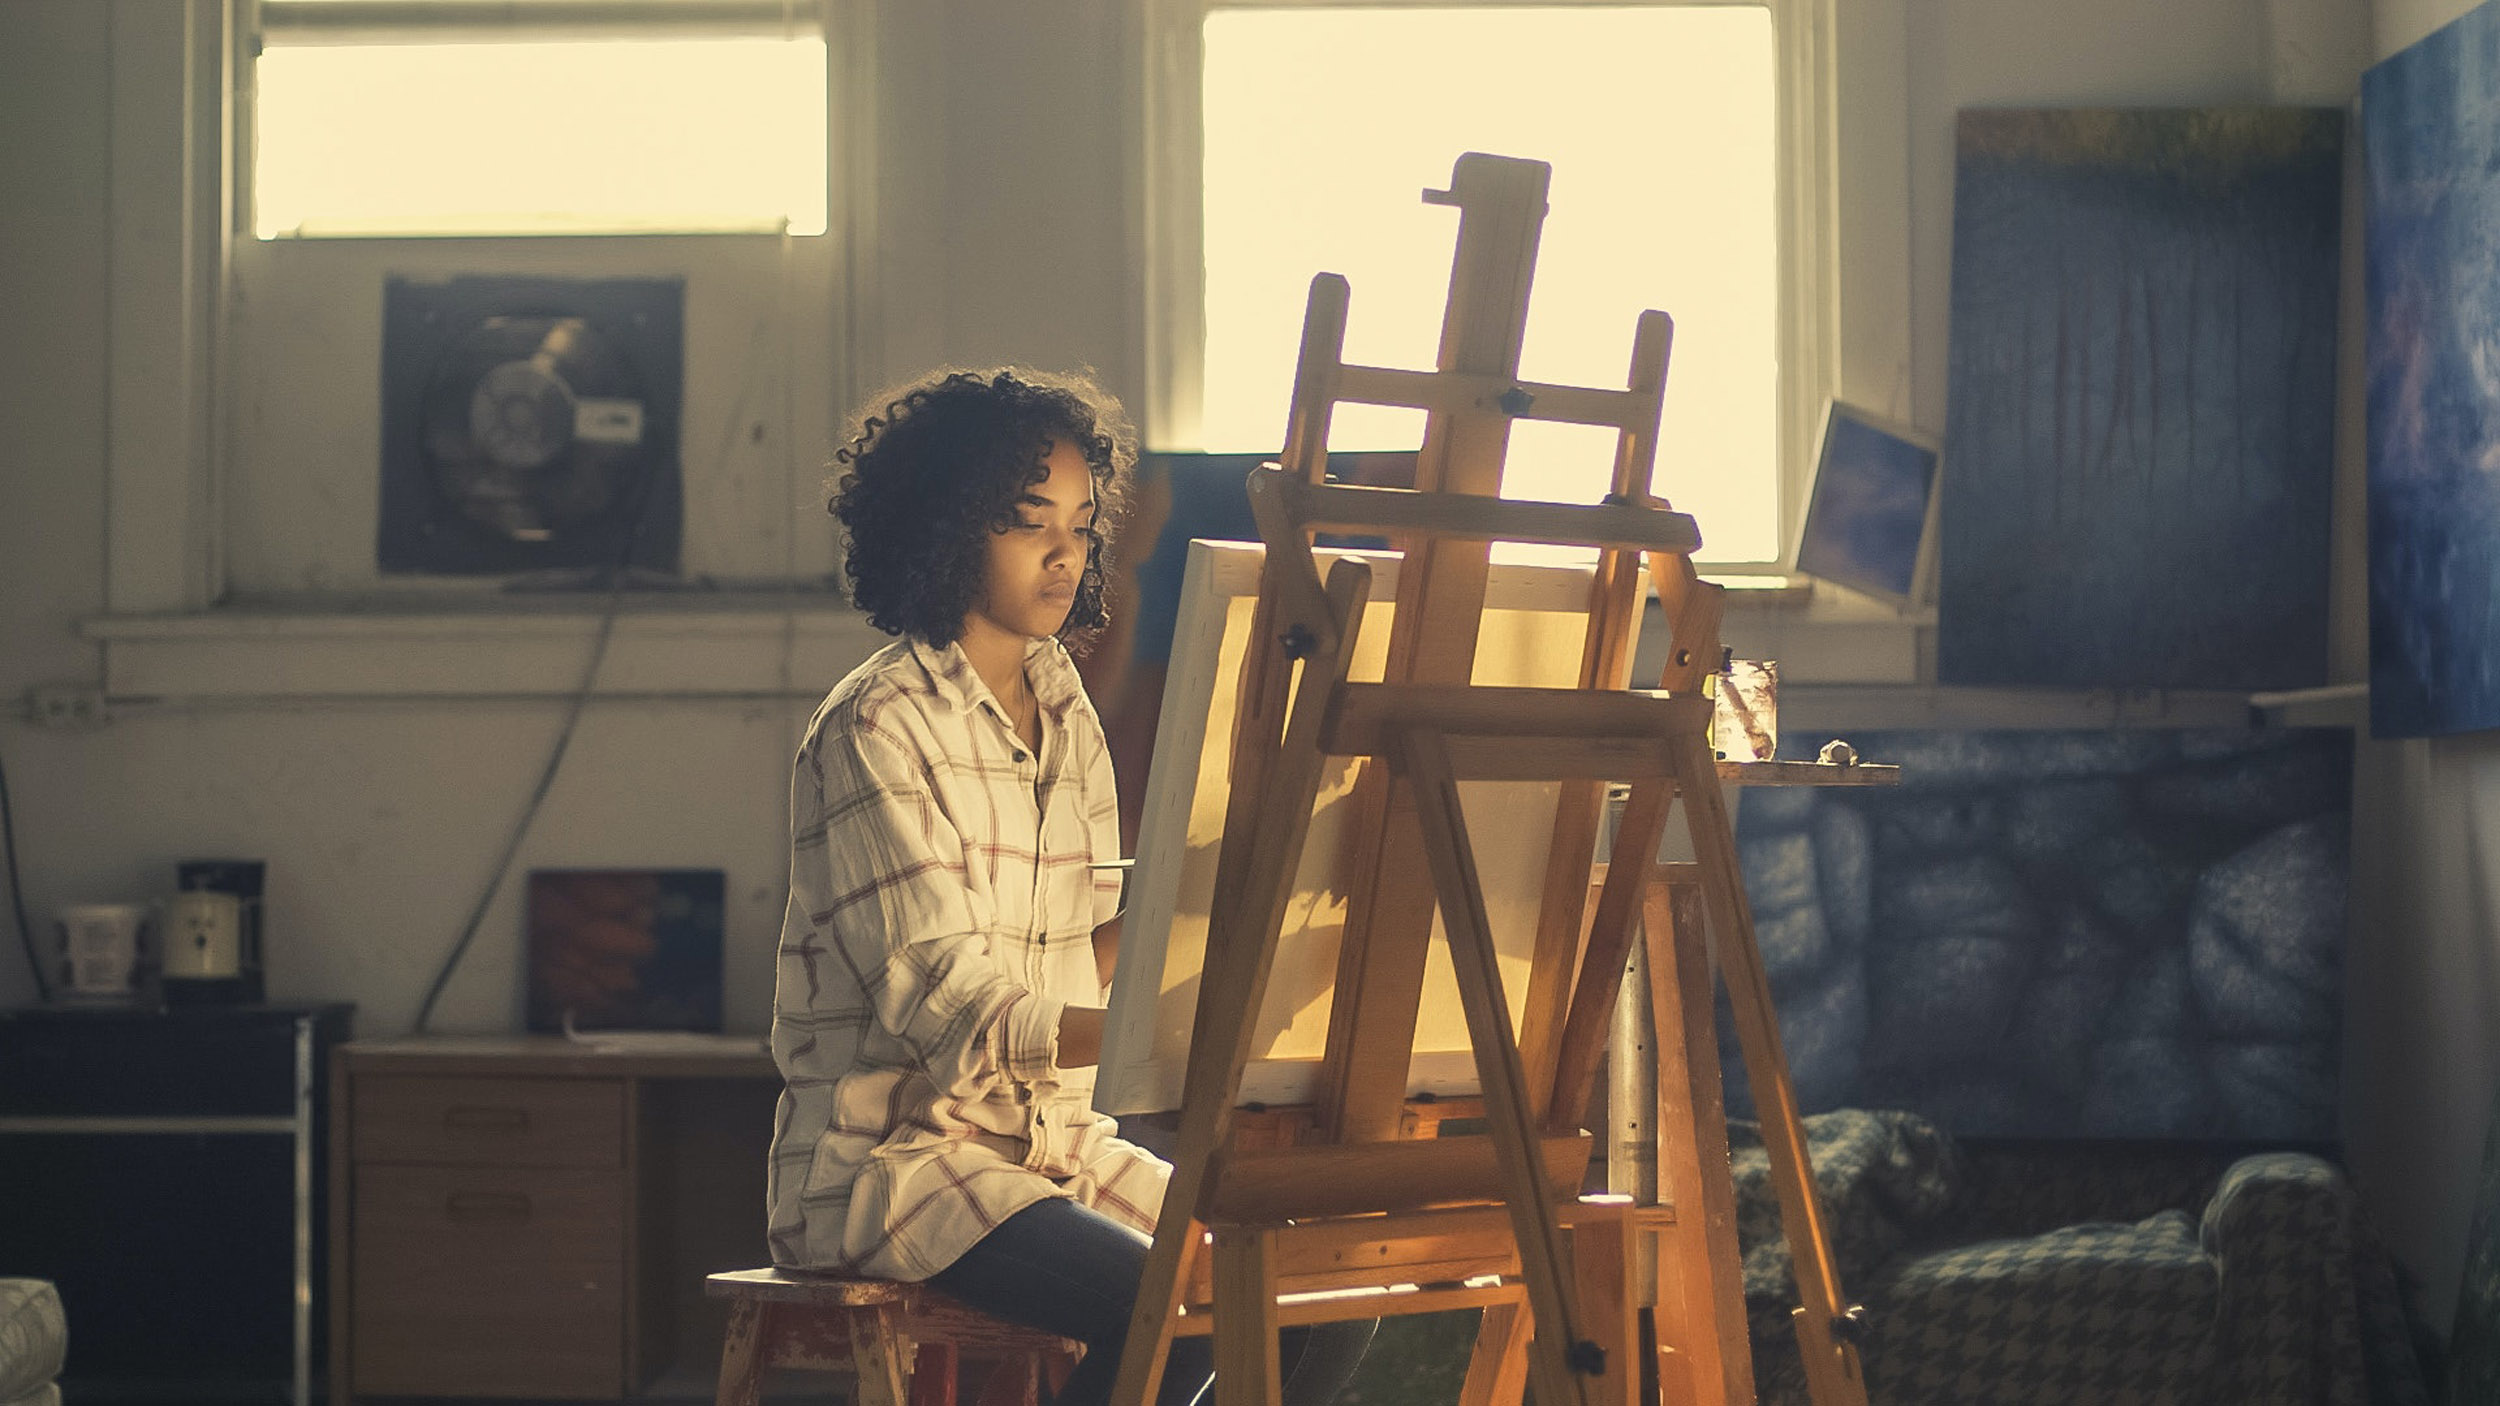 teen at easel